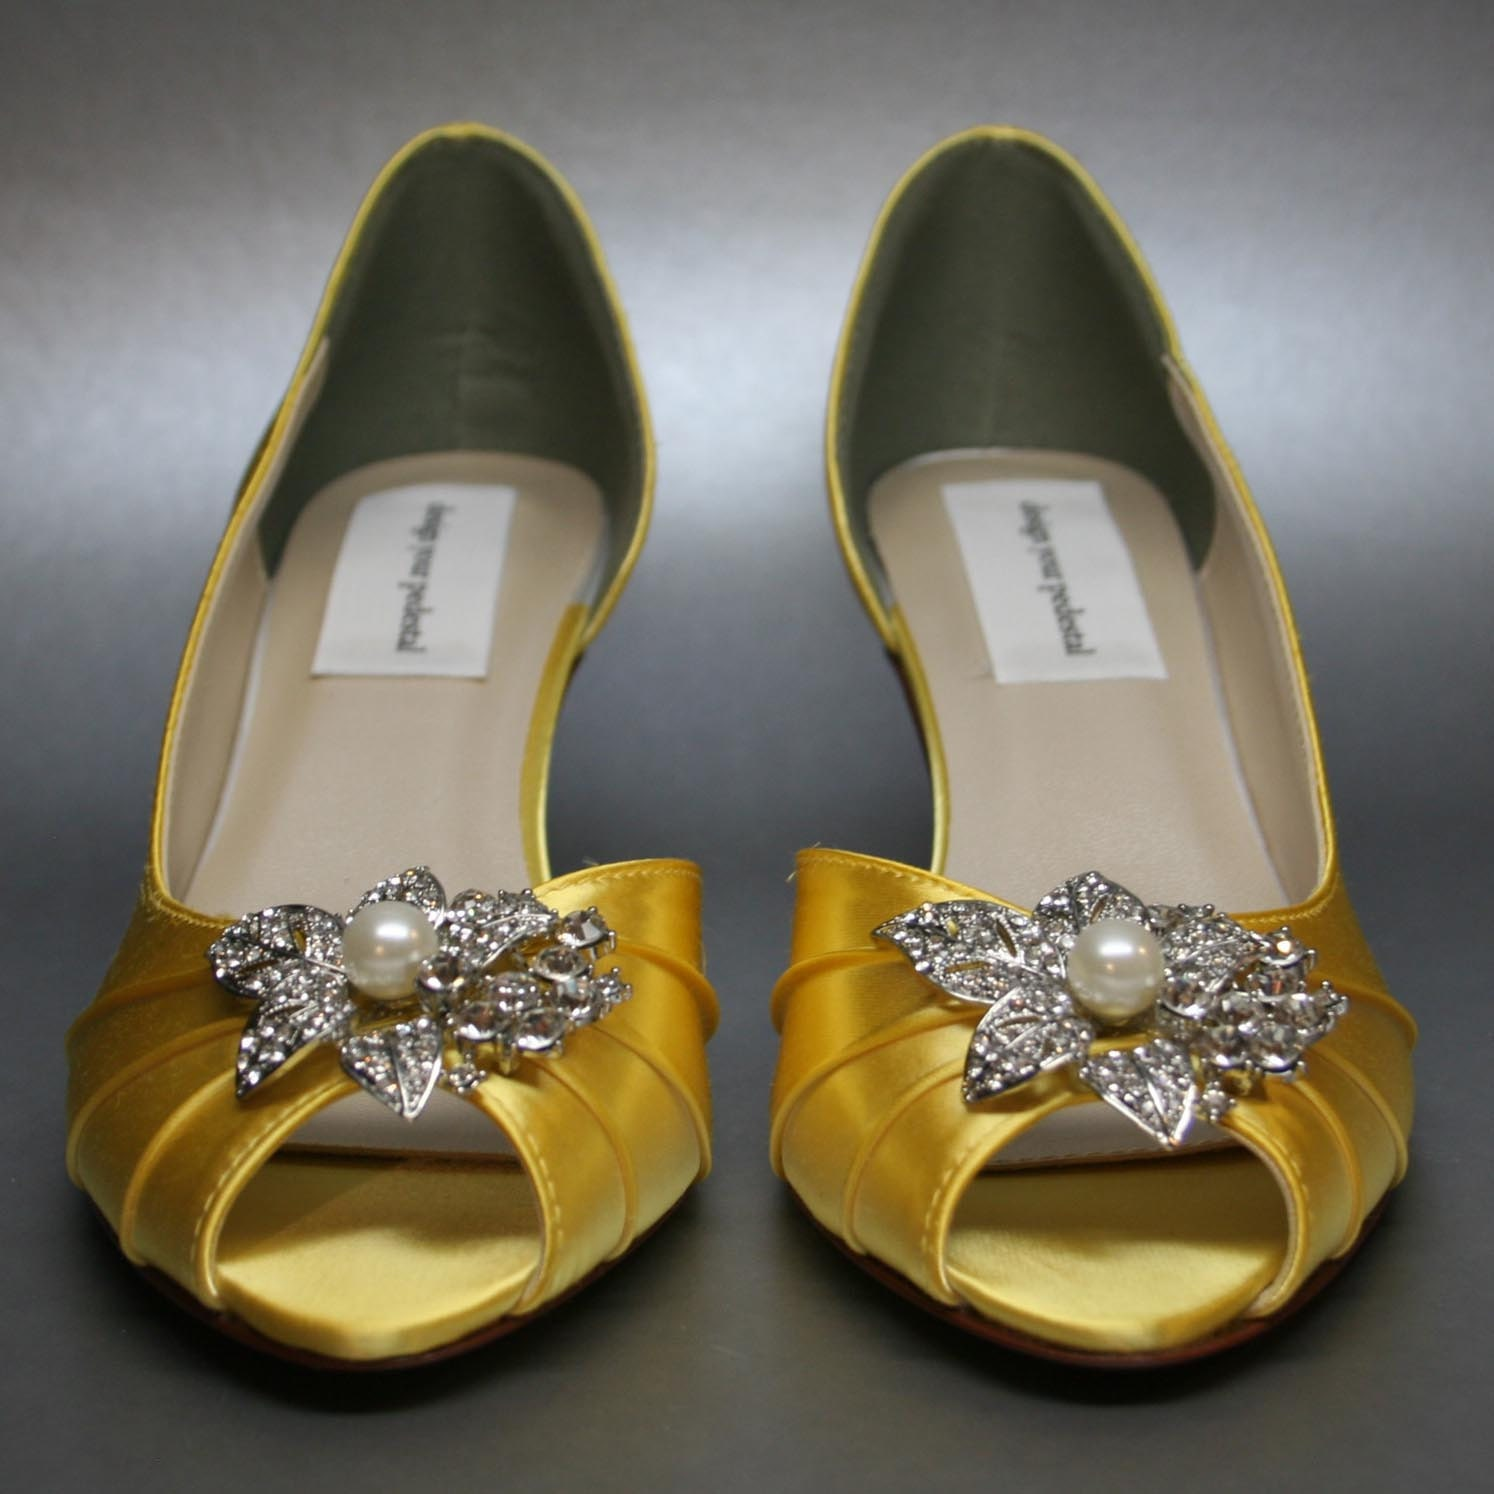 Wedding Shoes Yellow Wedding Shoes Yellow Wedding Yellow